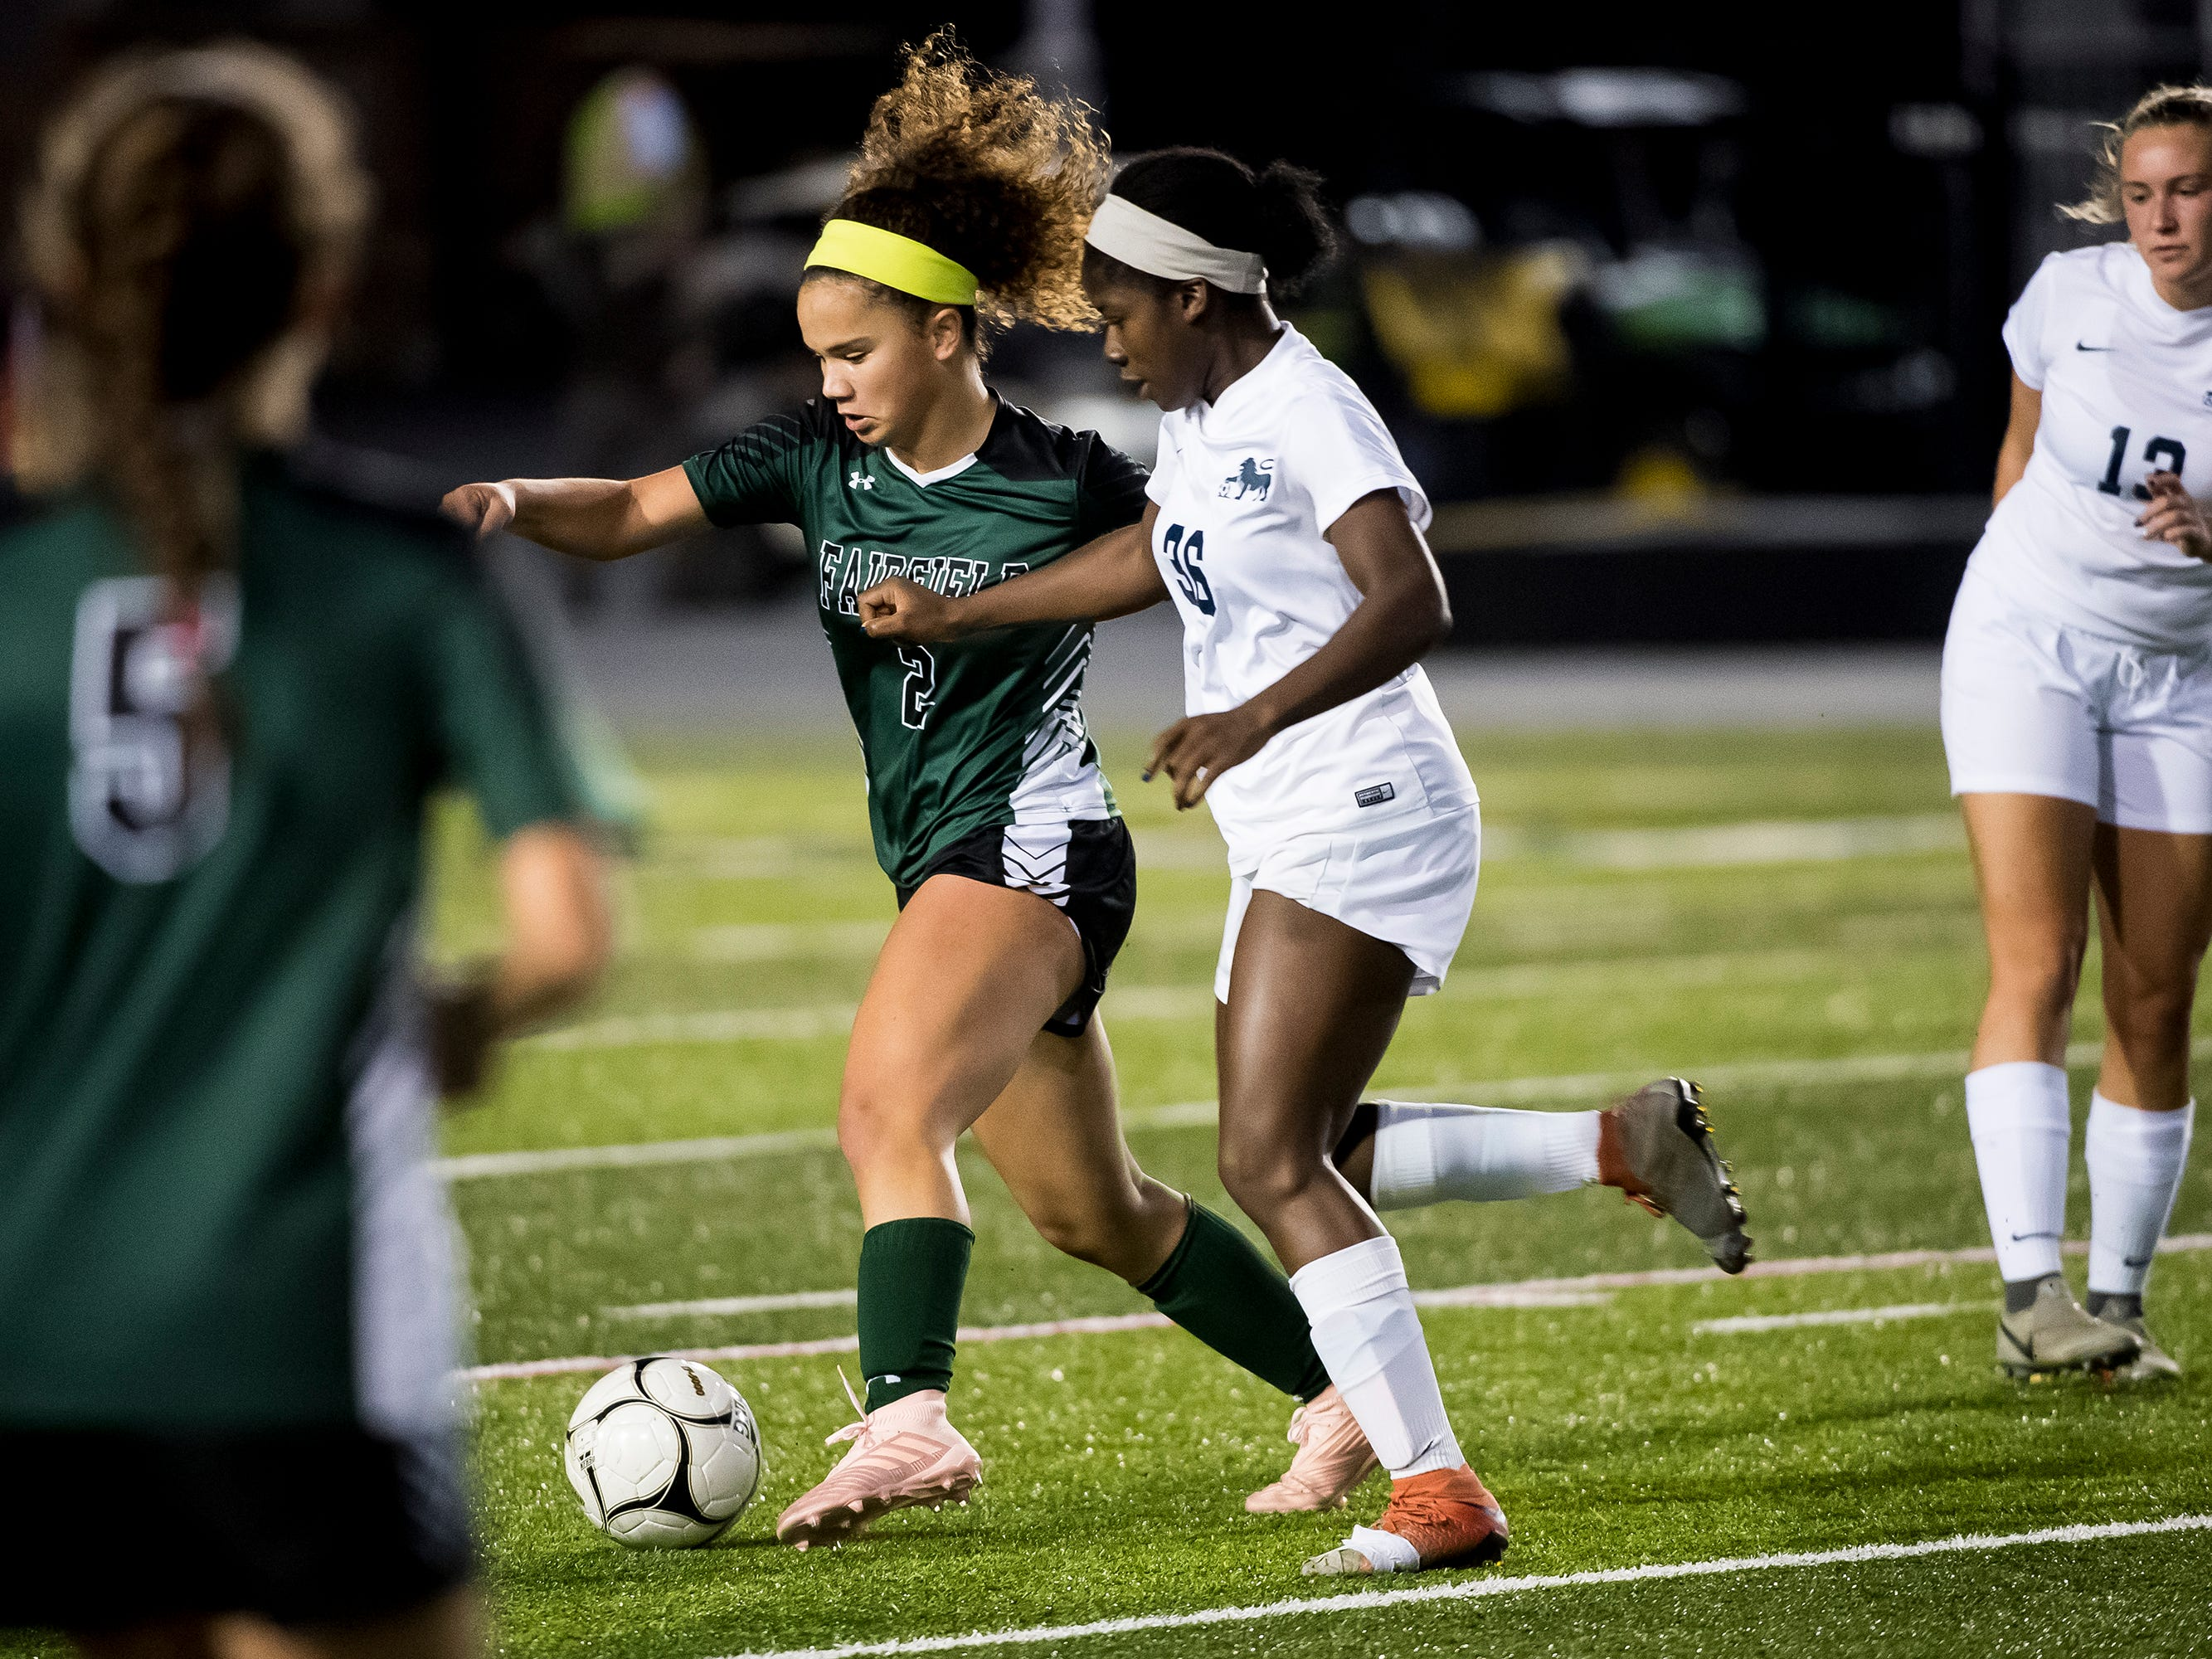 Camp Hill ends Fairfield bid for third straight district title in girls' soccer